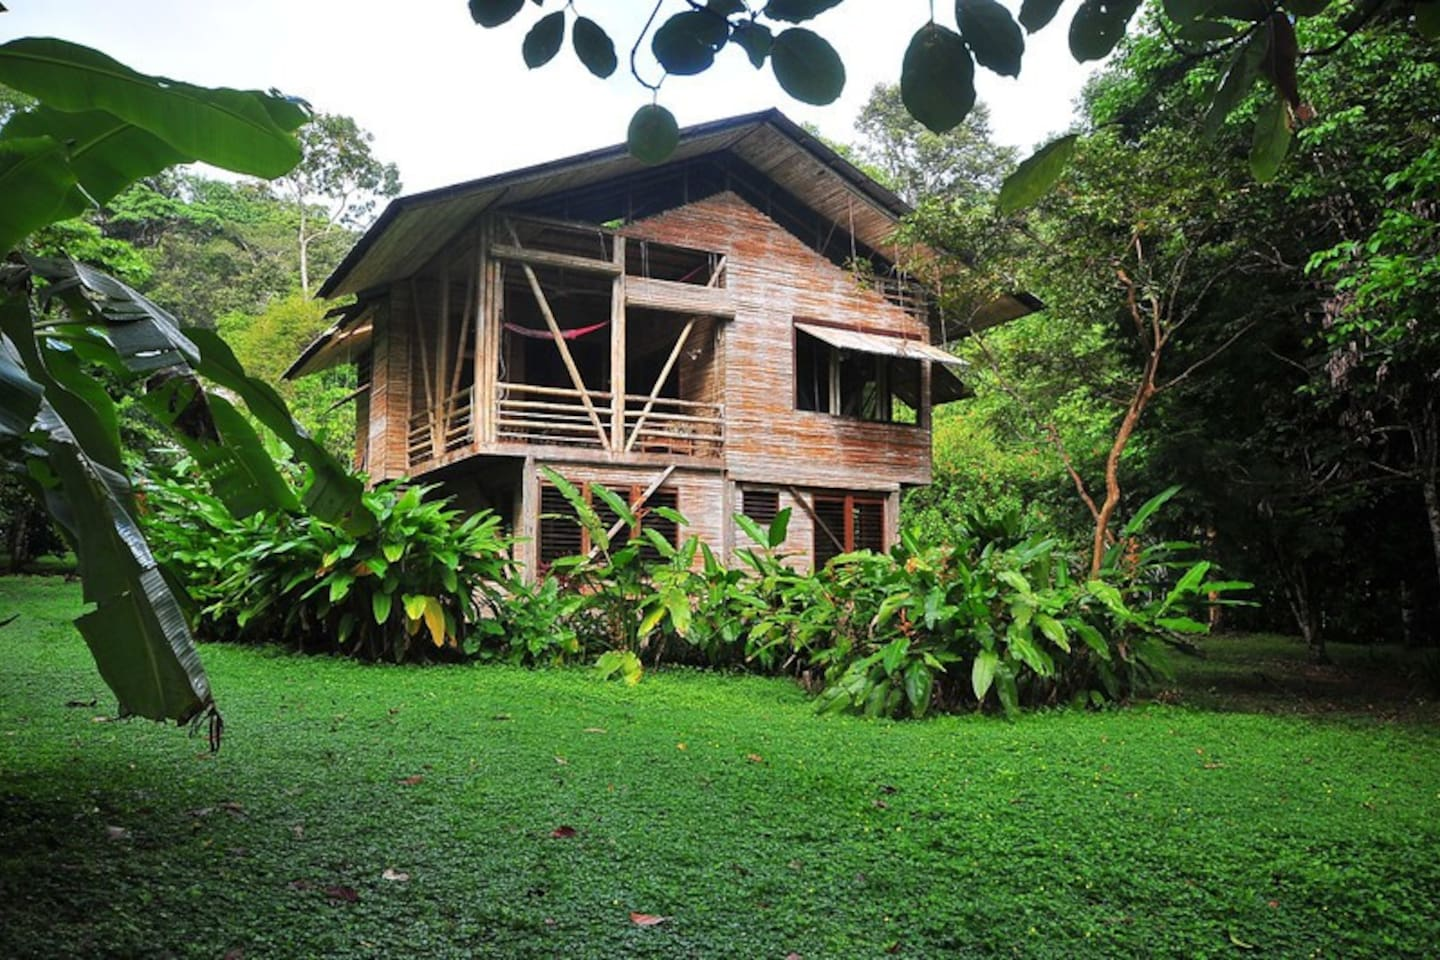 Casa Pina by guest James MacCraw